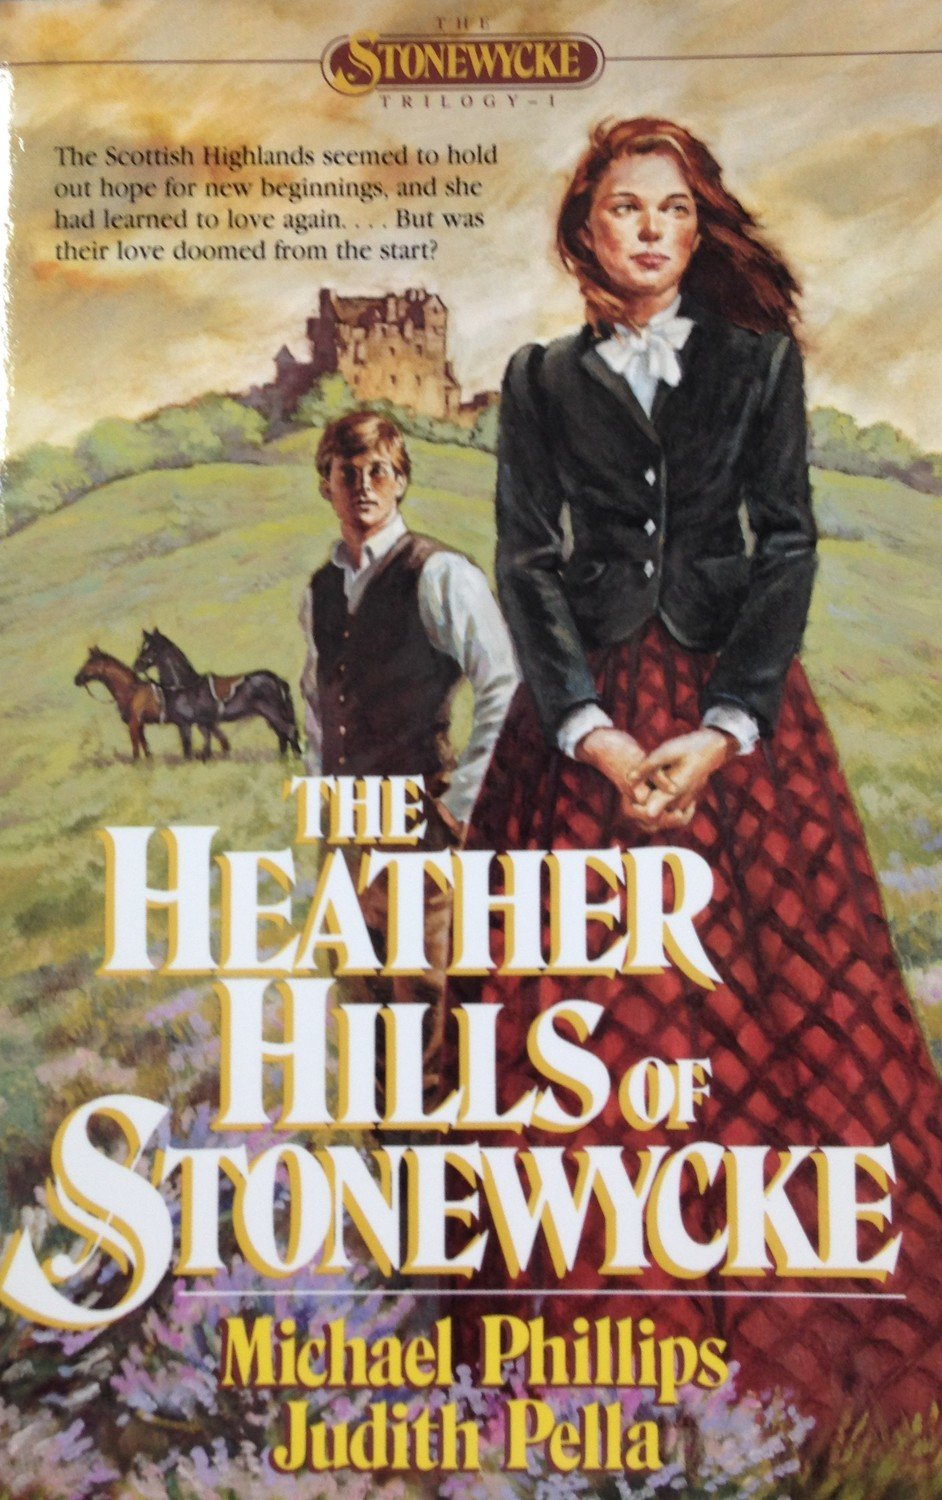 The Heather Hills of Stonewycke by Michael Phillips and Judith Pella